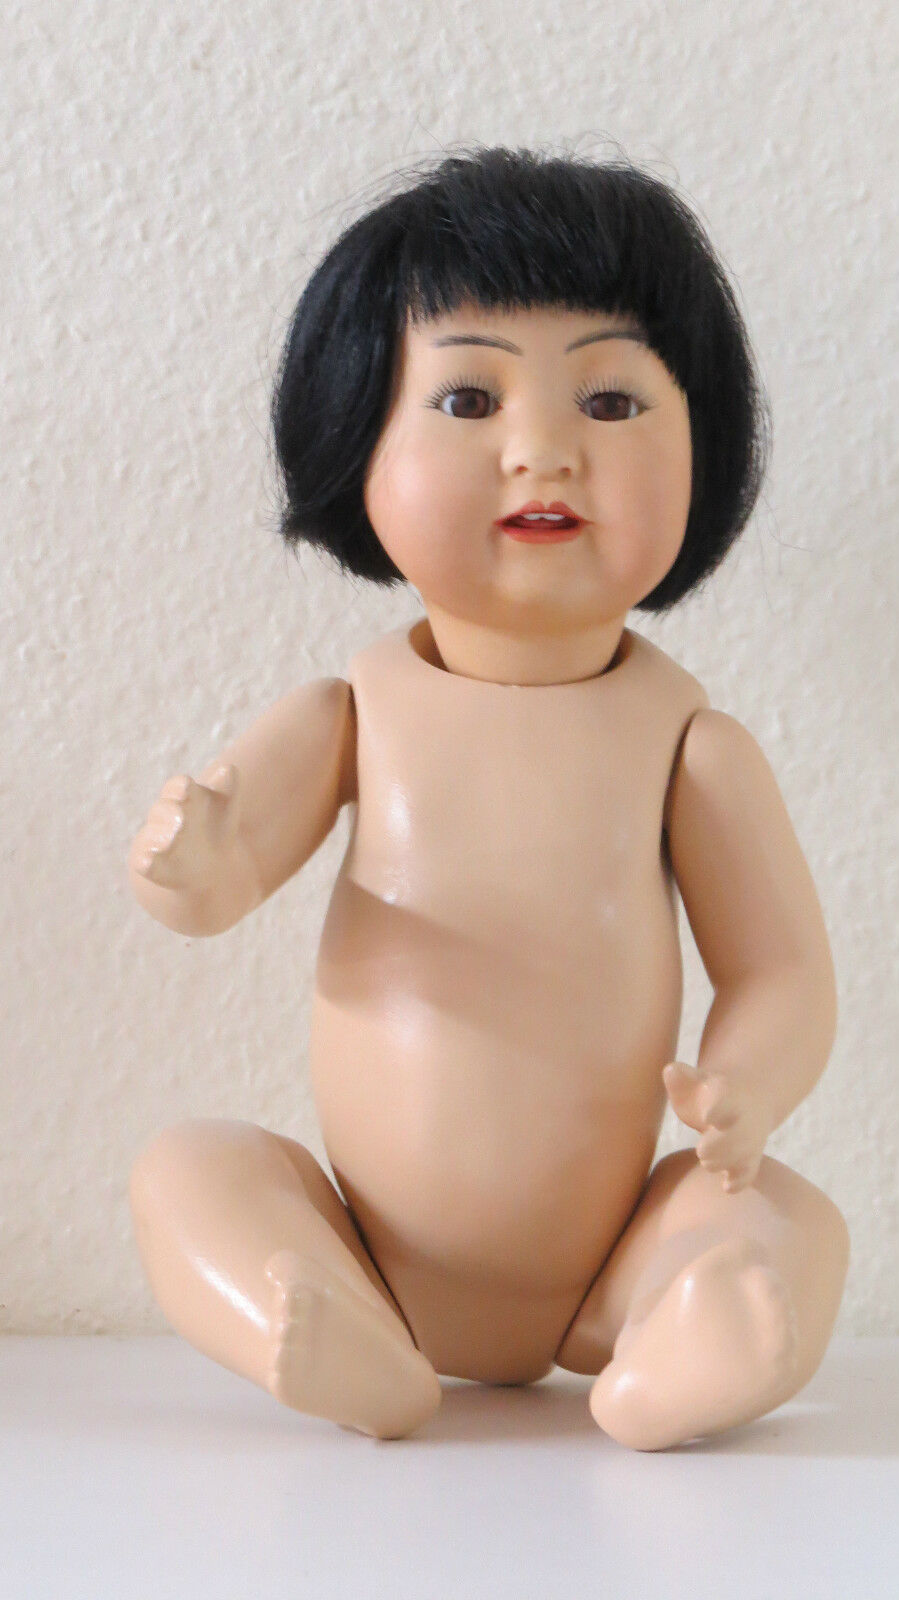 Asiatique  KESTNER 32 cm 12,8 Inch  Poupée Ancienne  Reproduction Antique doll